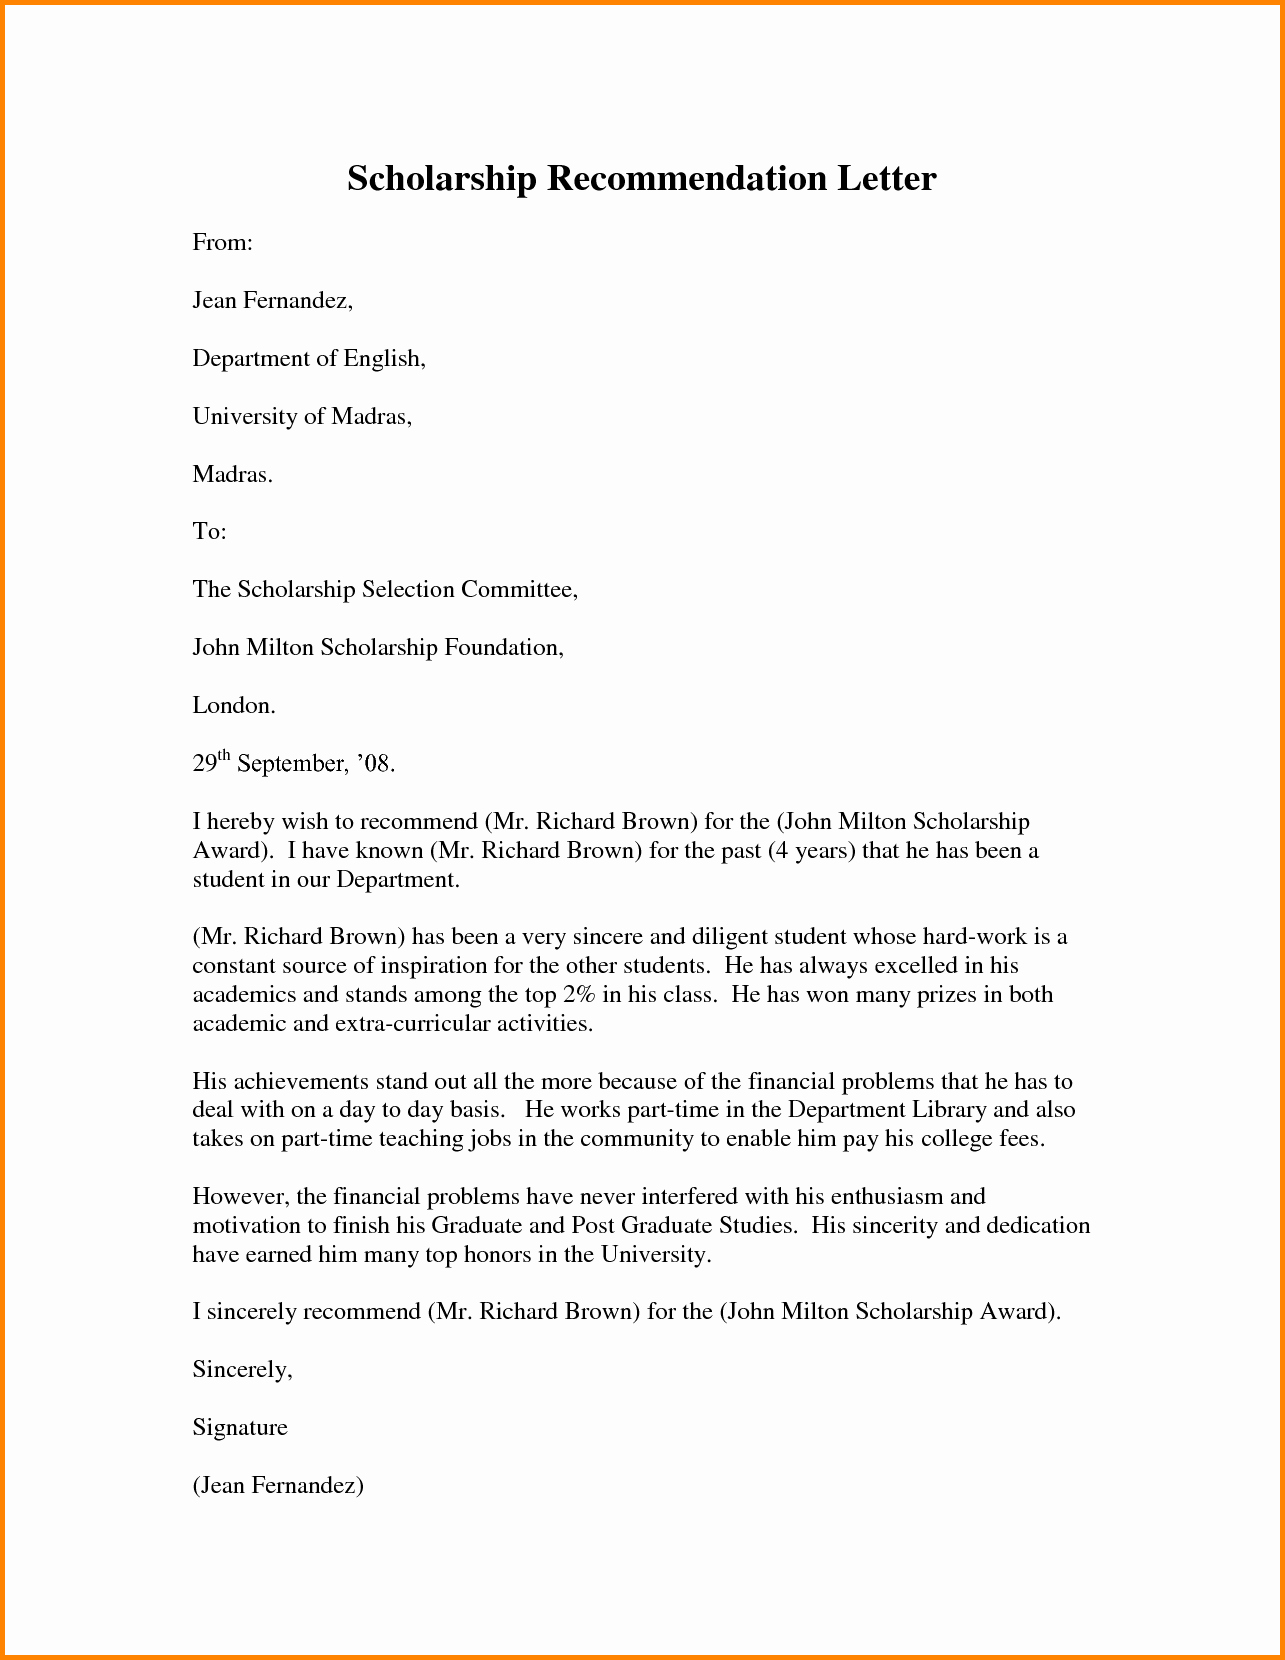 Scholarship Recommendation Letter Sample Awesome Scholarship Re Mendation Letter